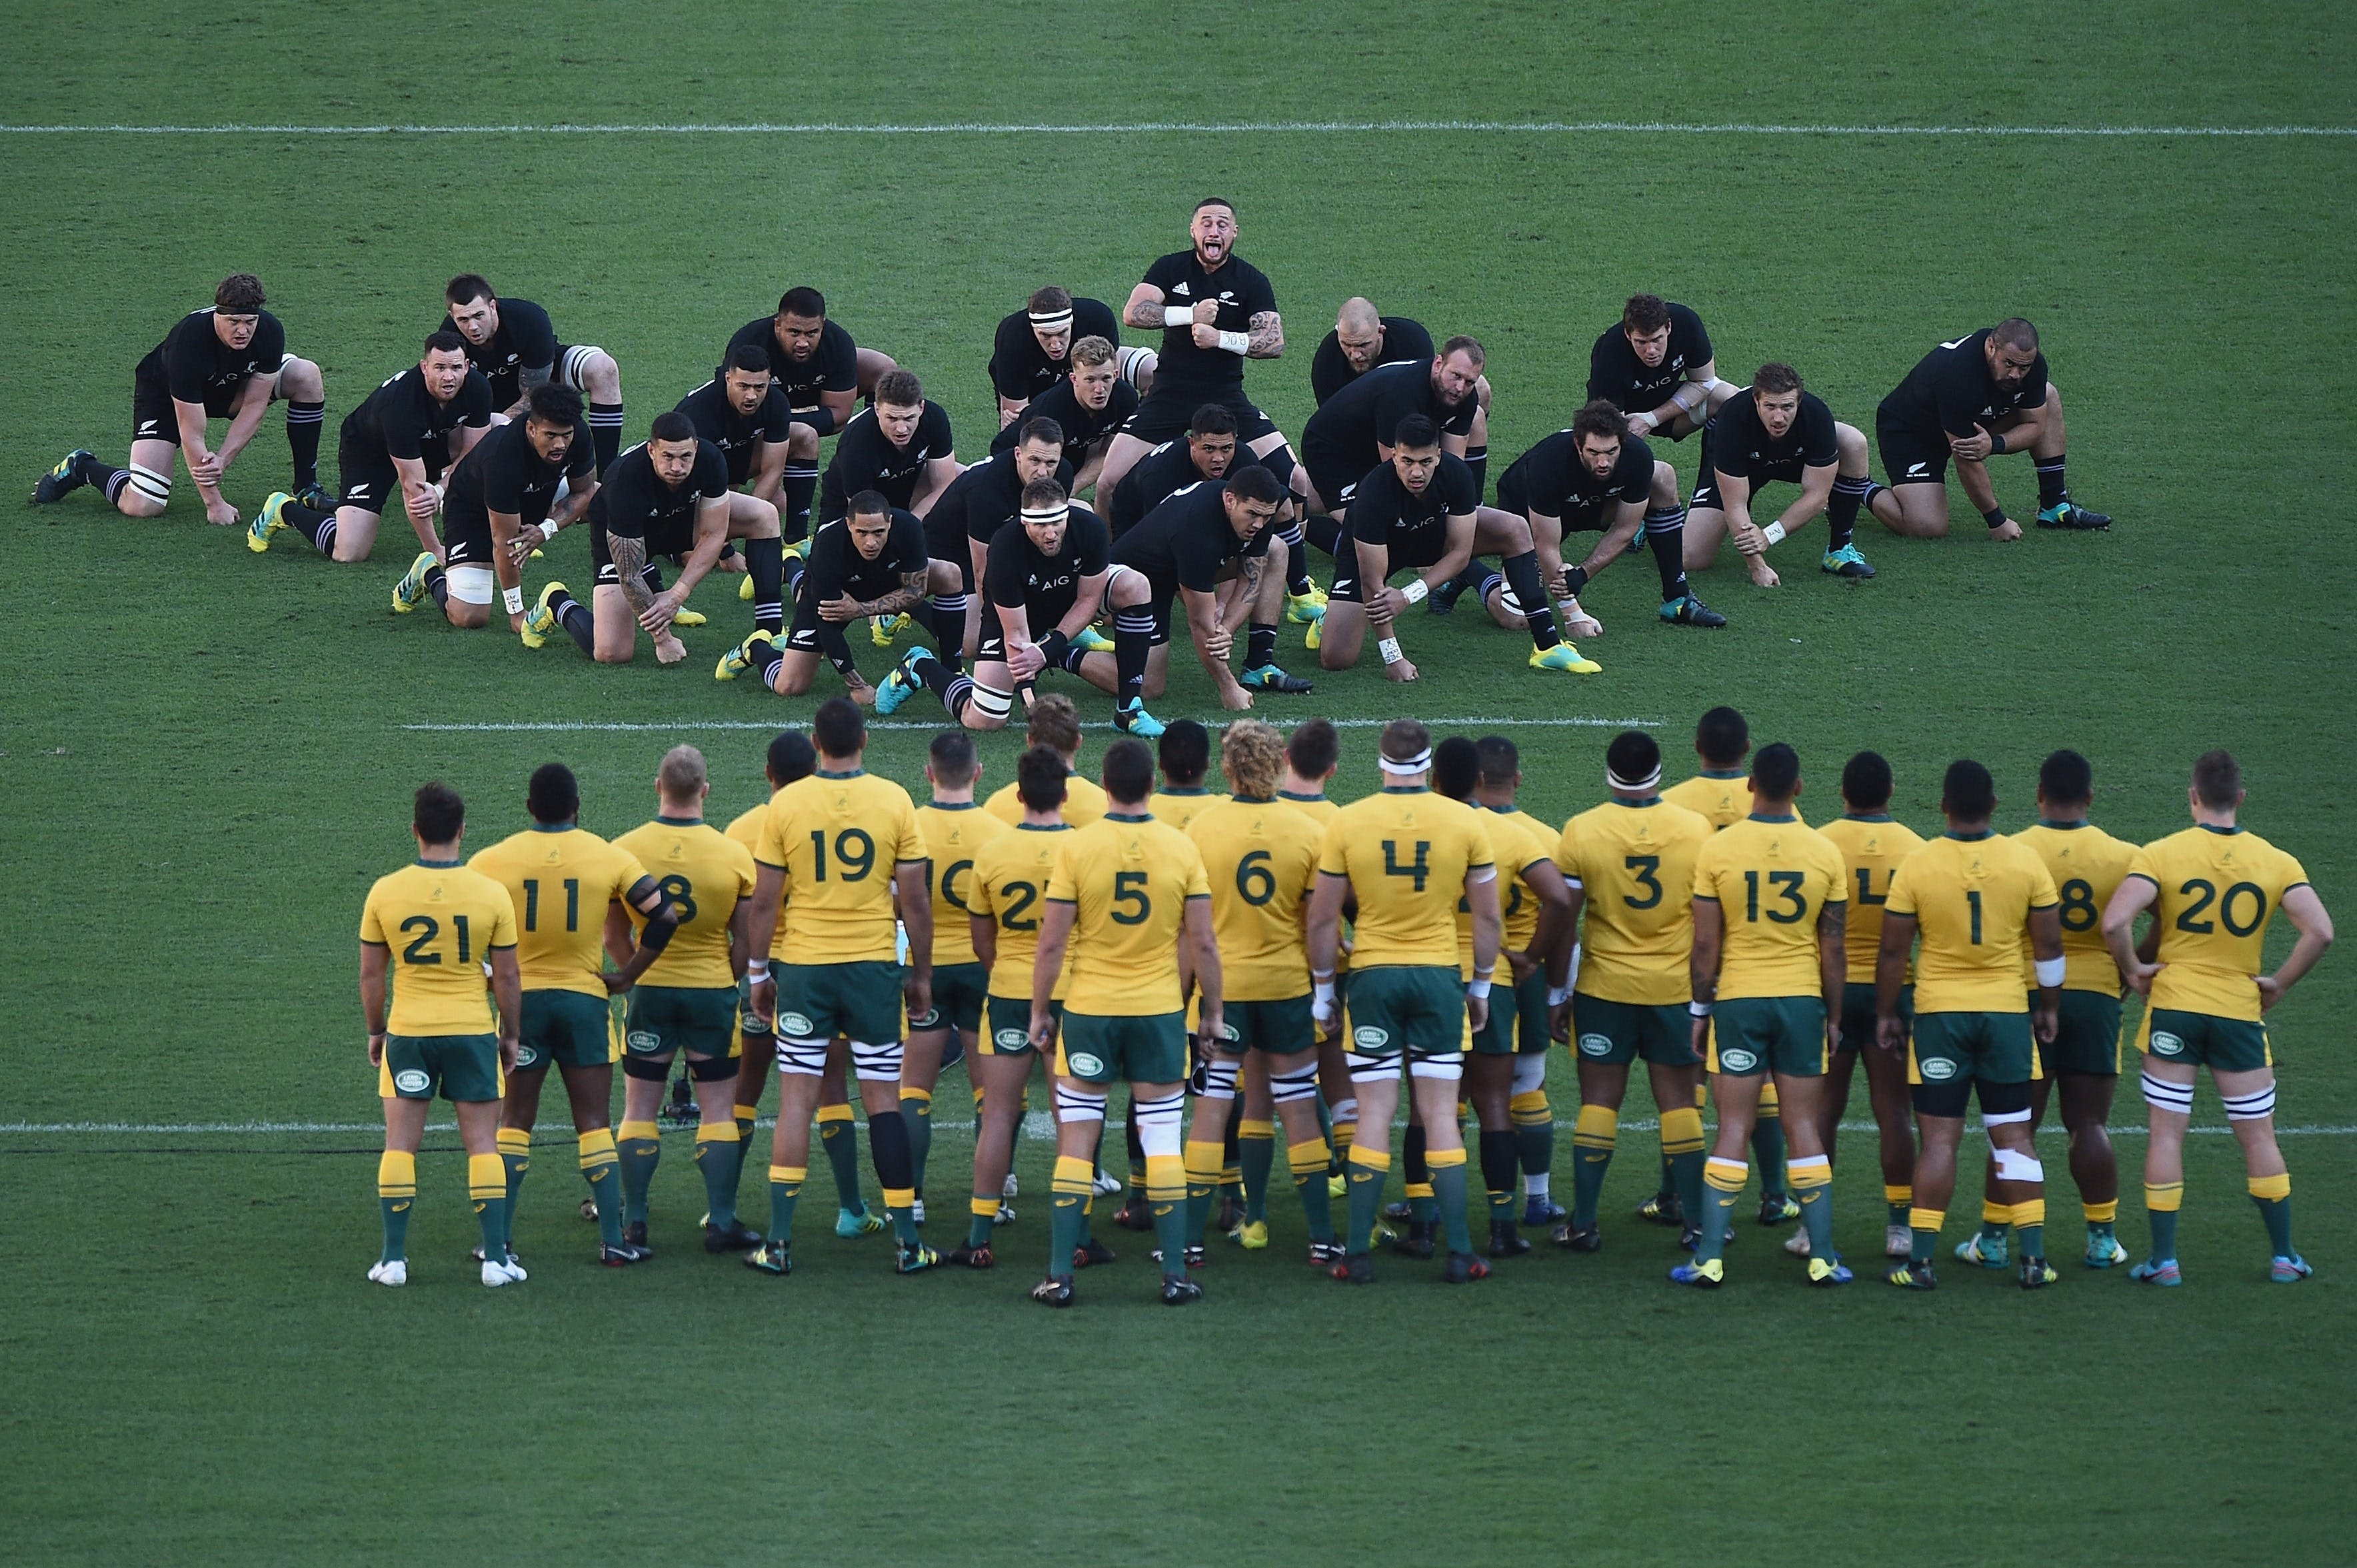 Bledisloe Cup Qantas Wallabies versus All Blacks - Accommodation in Surfers Paradise